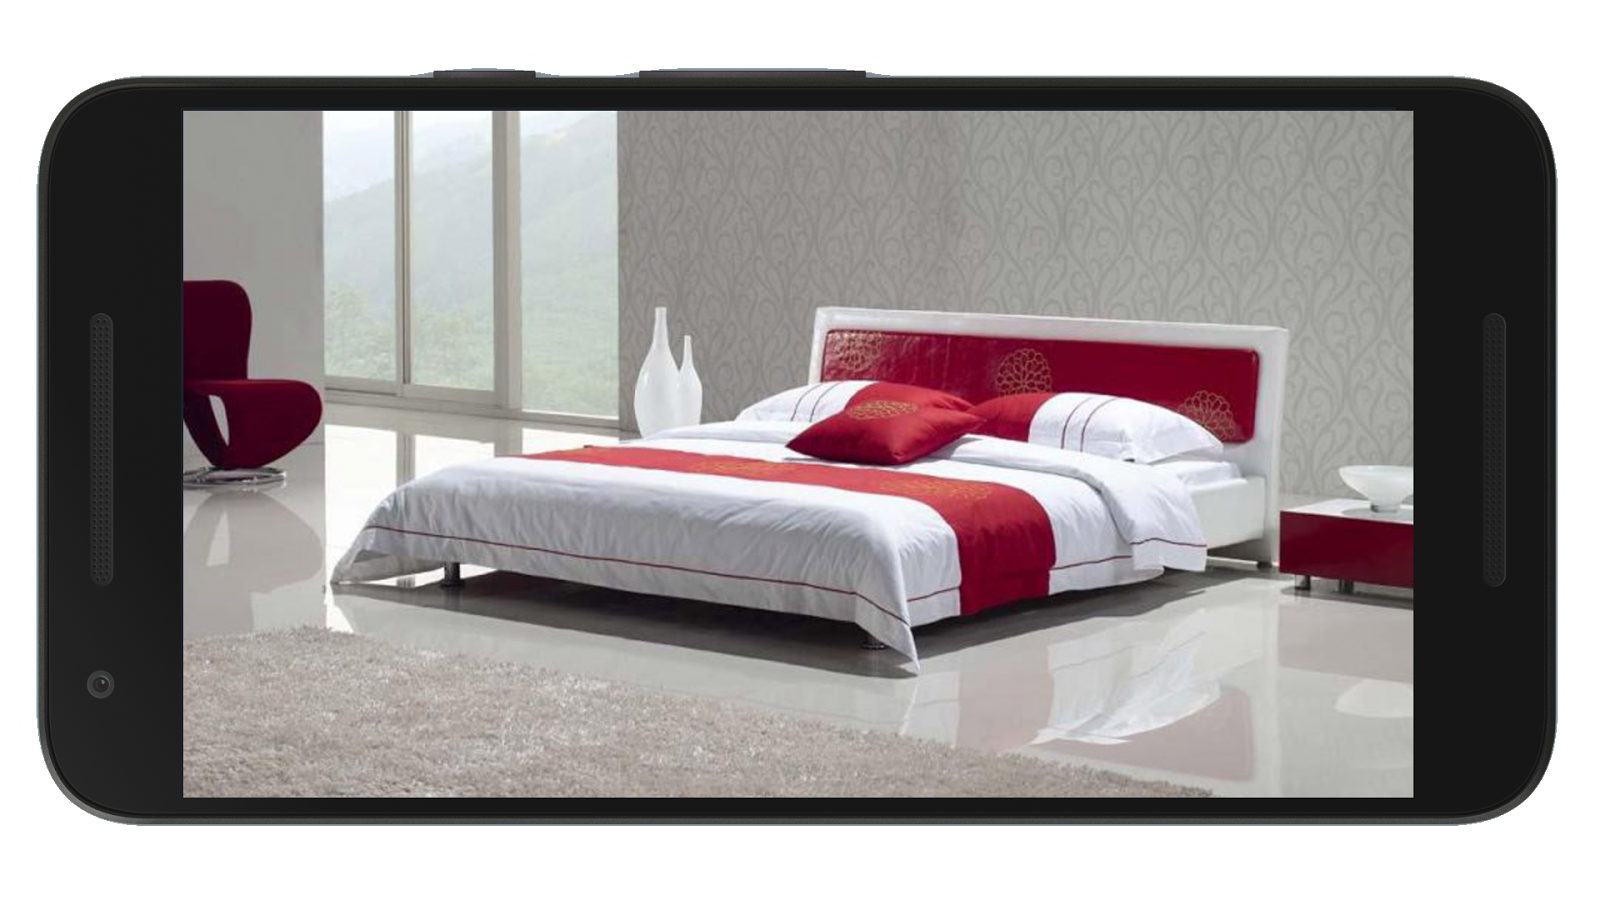 Latest Modern Bedroom Design Android Apps on Google Play